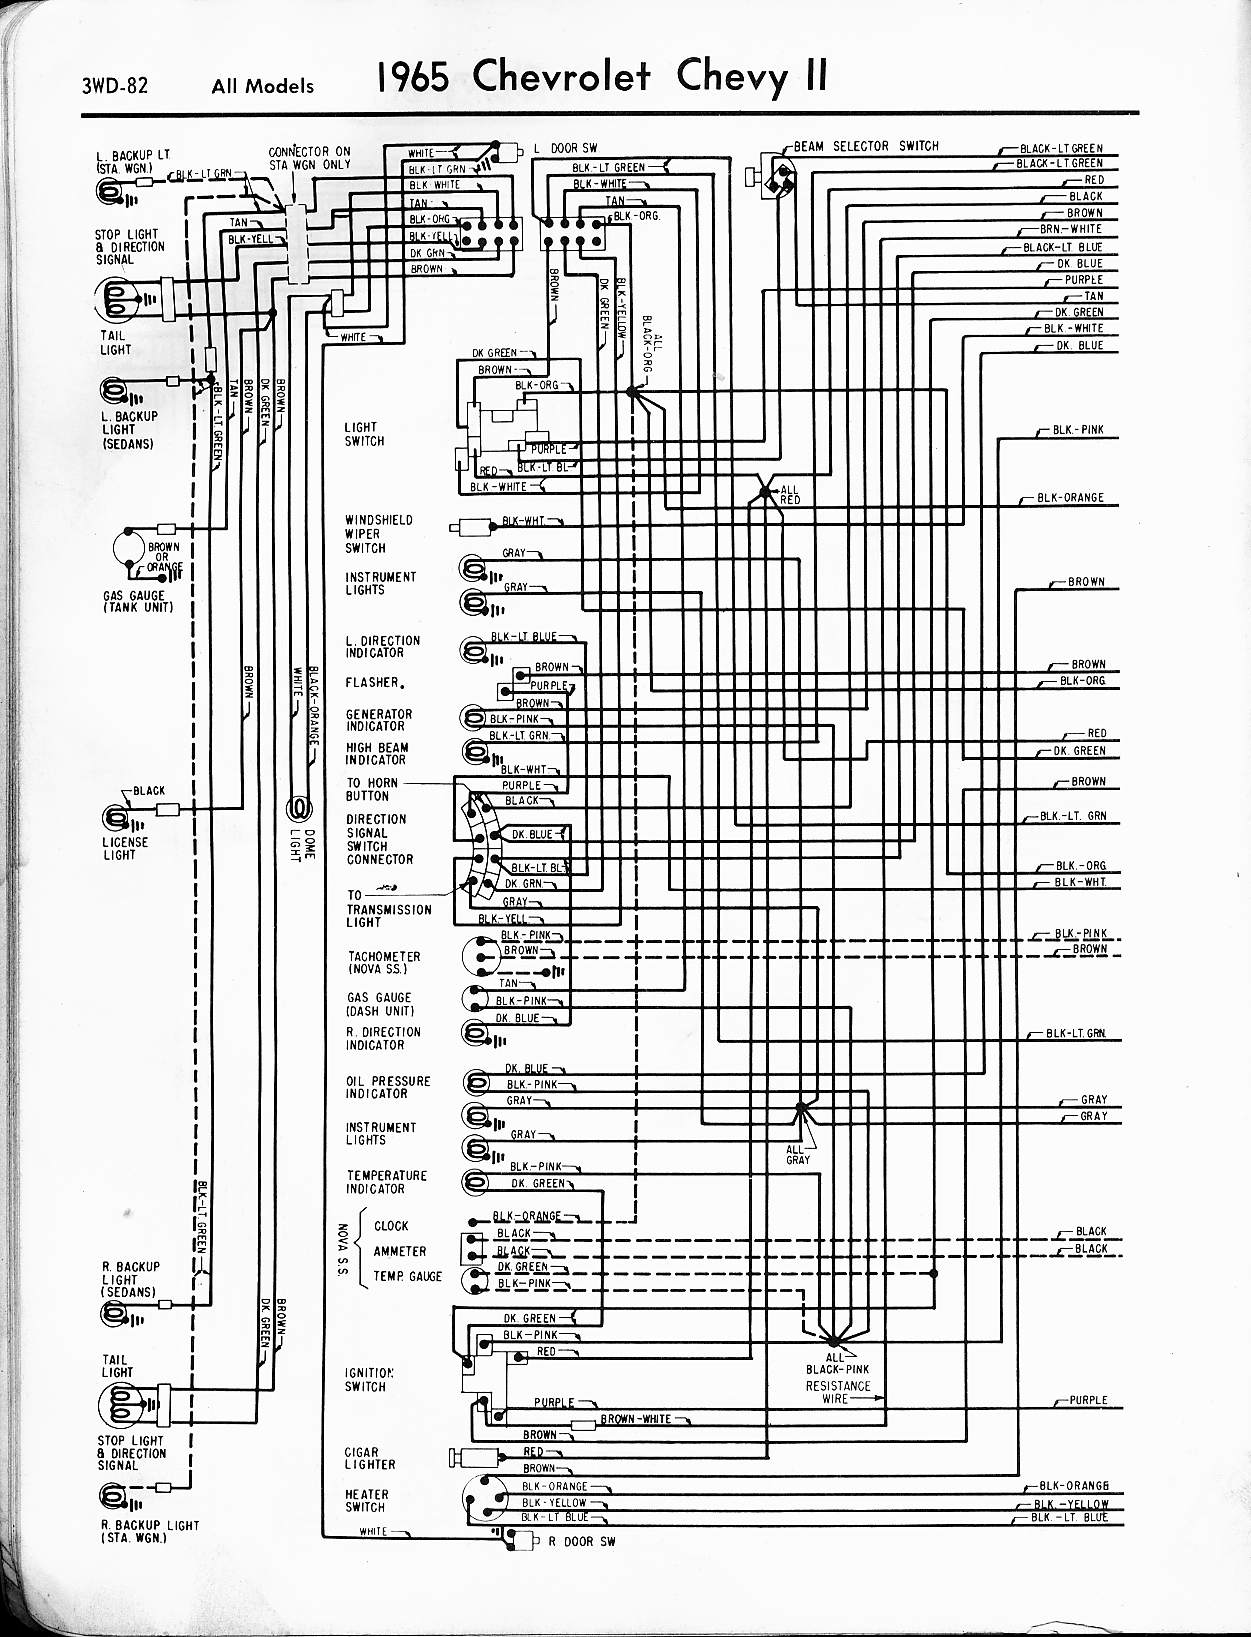 57 Pontiac Wiring Diagram Libraries 56 Chevrolet Bzerob Com Technical Articles Library Section40 Chevy 55